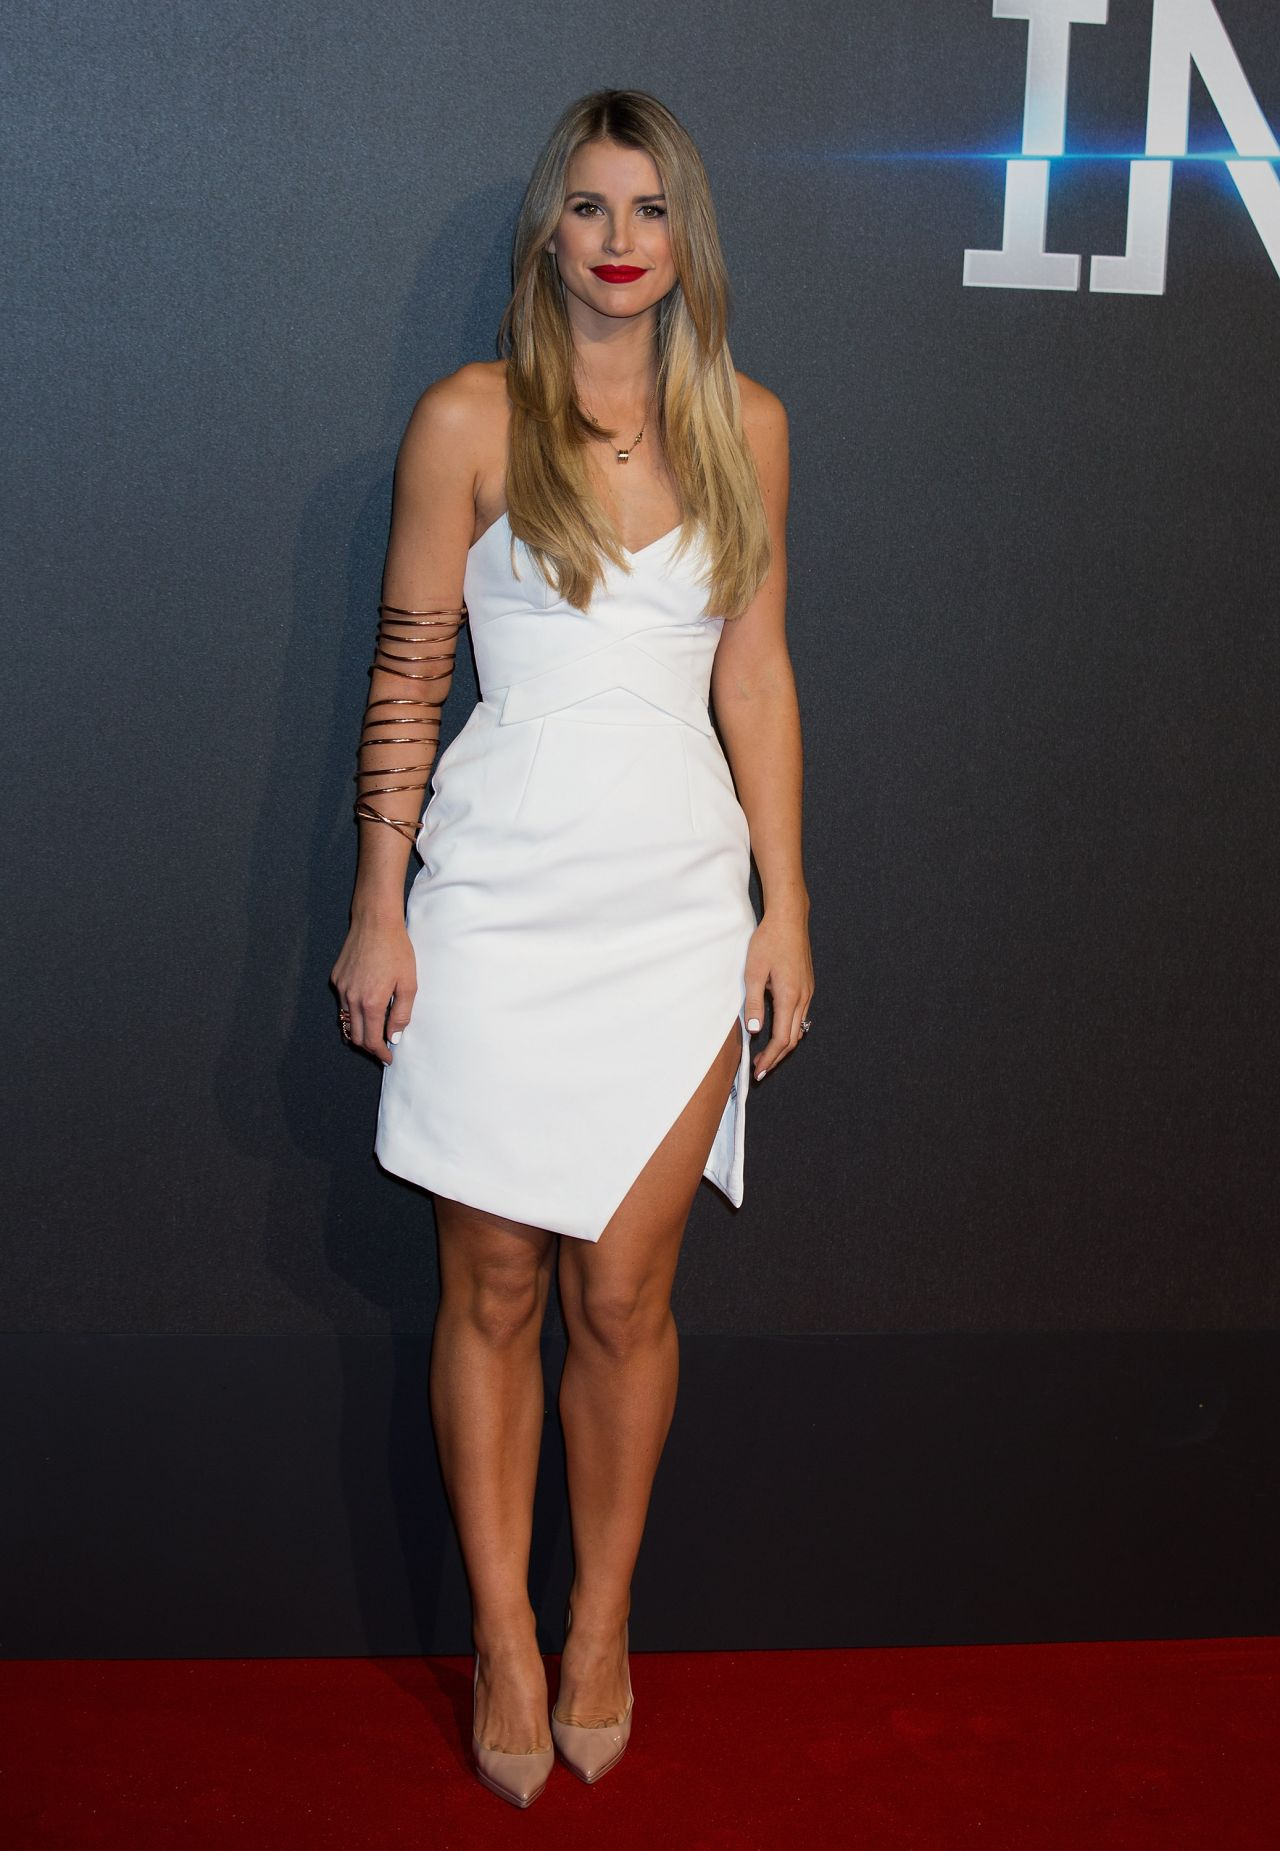 Vogue Williams Insurgent Premiere At Odeon Leicester